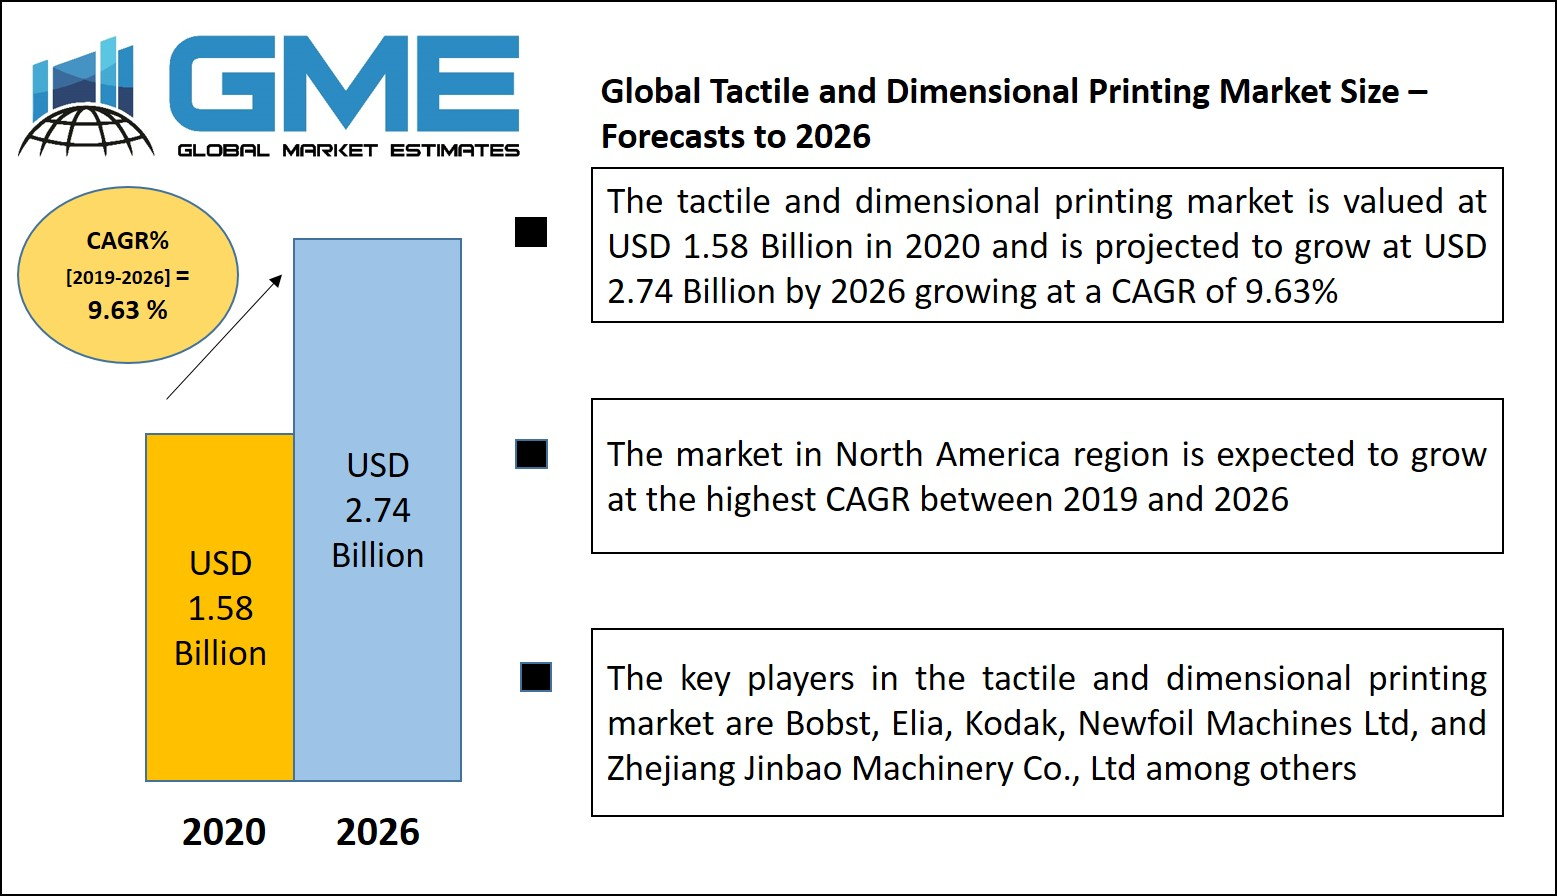 Global Tactile and Dimensional Printing Market Size – Forecasts to 2026